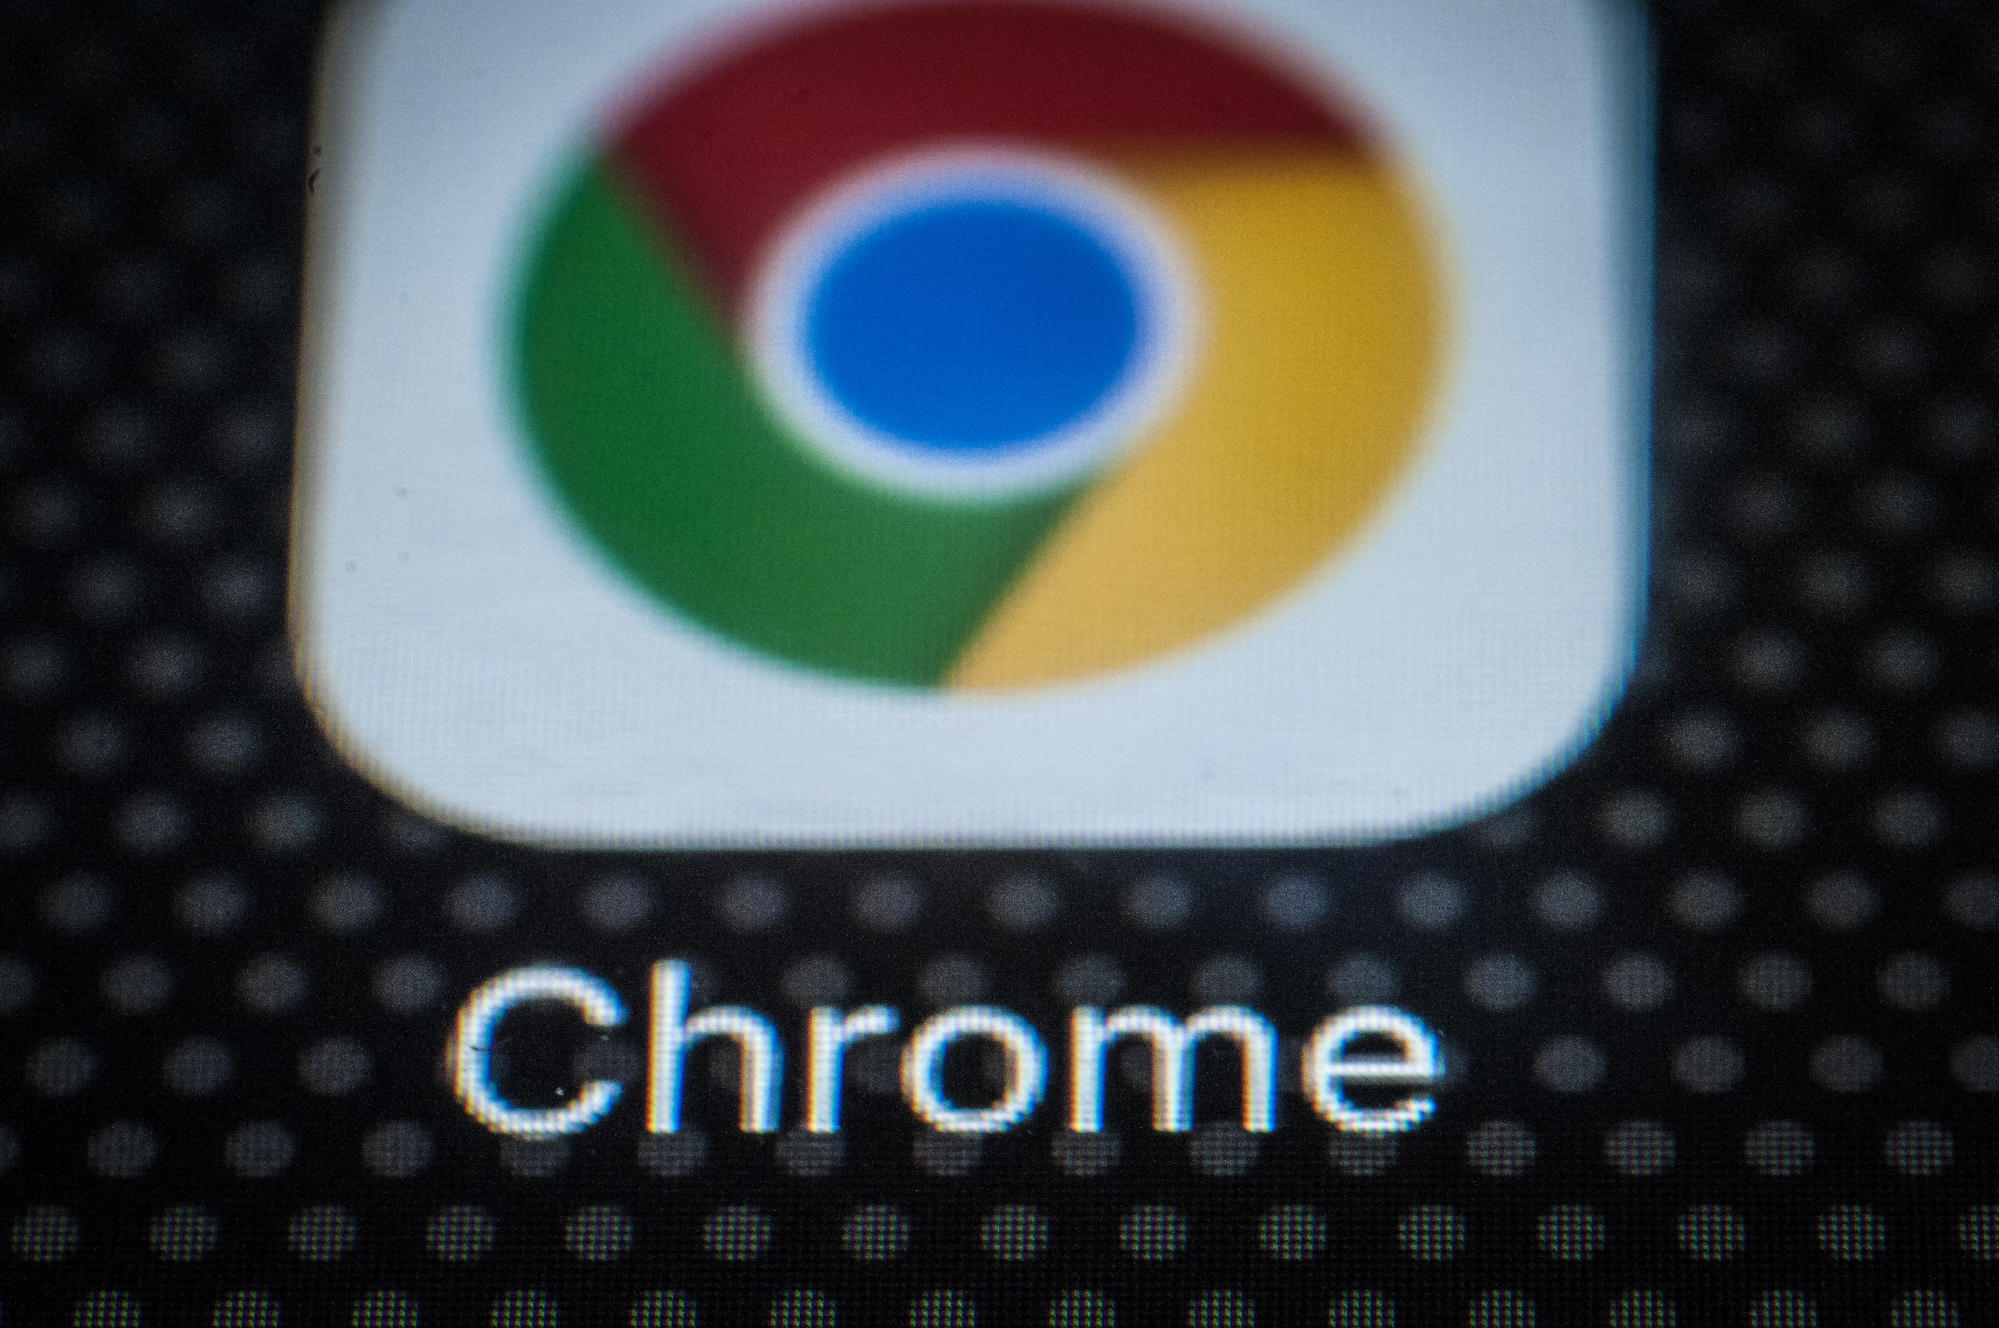 Google speeds up its release cycle for Chrome